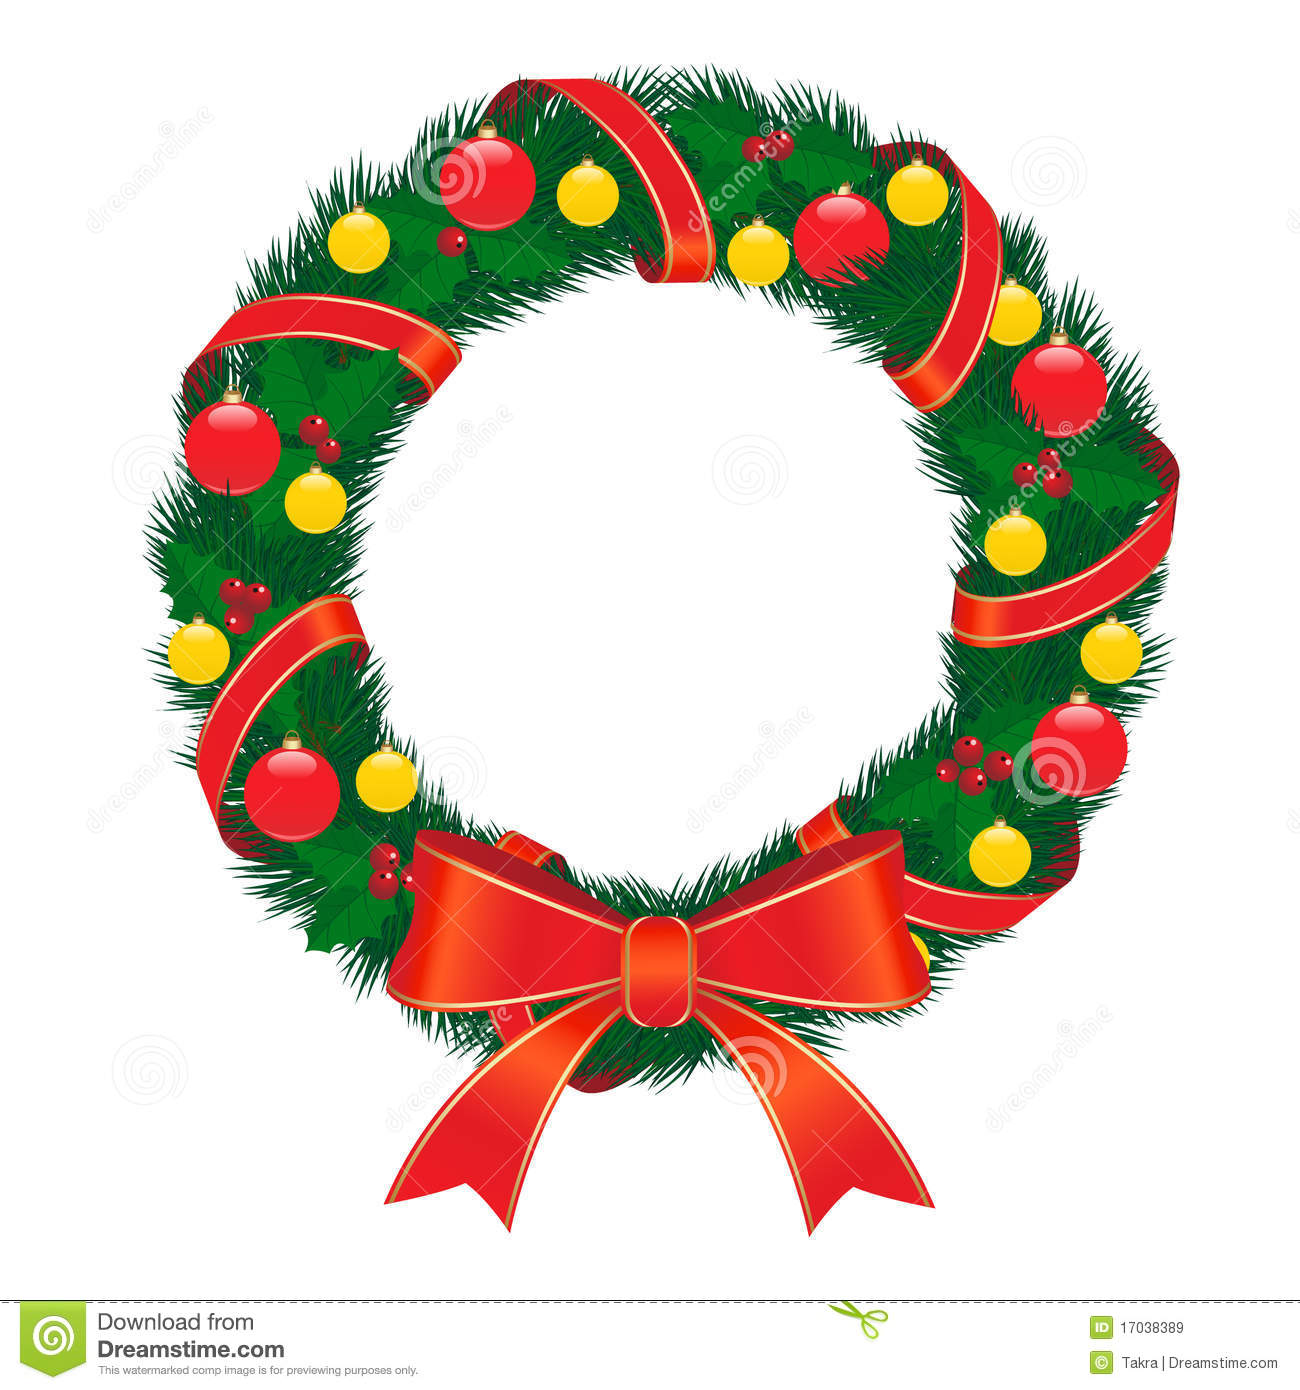 christmas wreath clip art clipart panda free clipart images rh clipartpanda com christmas wreaths clipart design christmas wreath clipart png